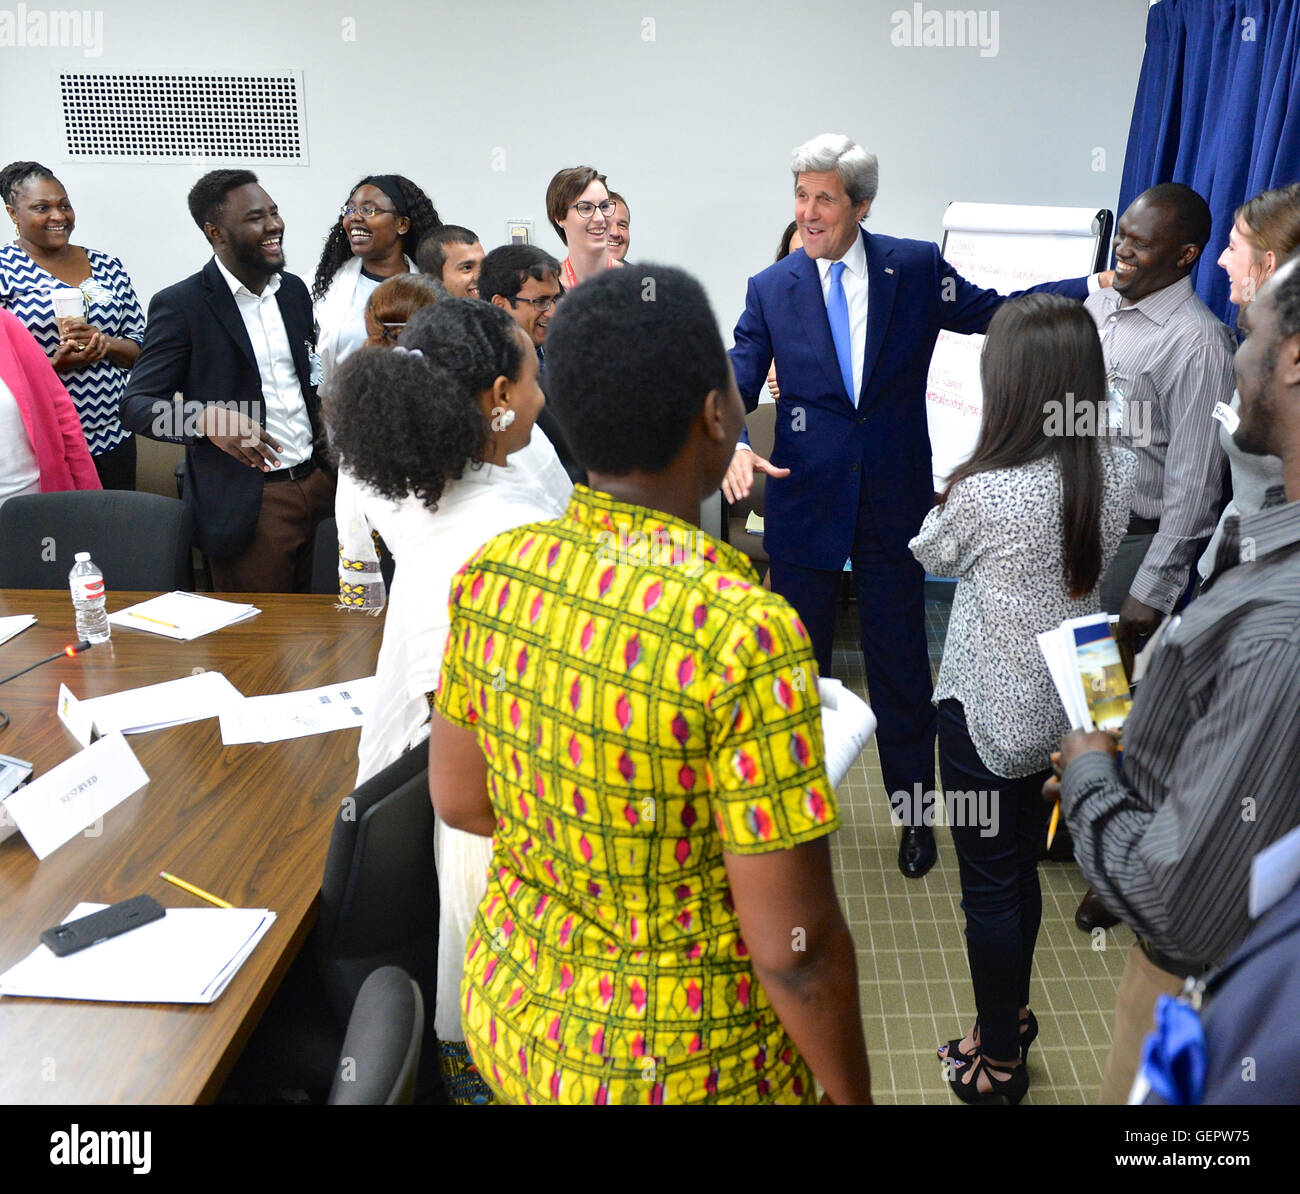 Secretary Kerry Meets With College Students During the U.S. Diplomacy Center Refugee Simulation in Washington - Stock Image